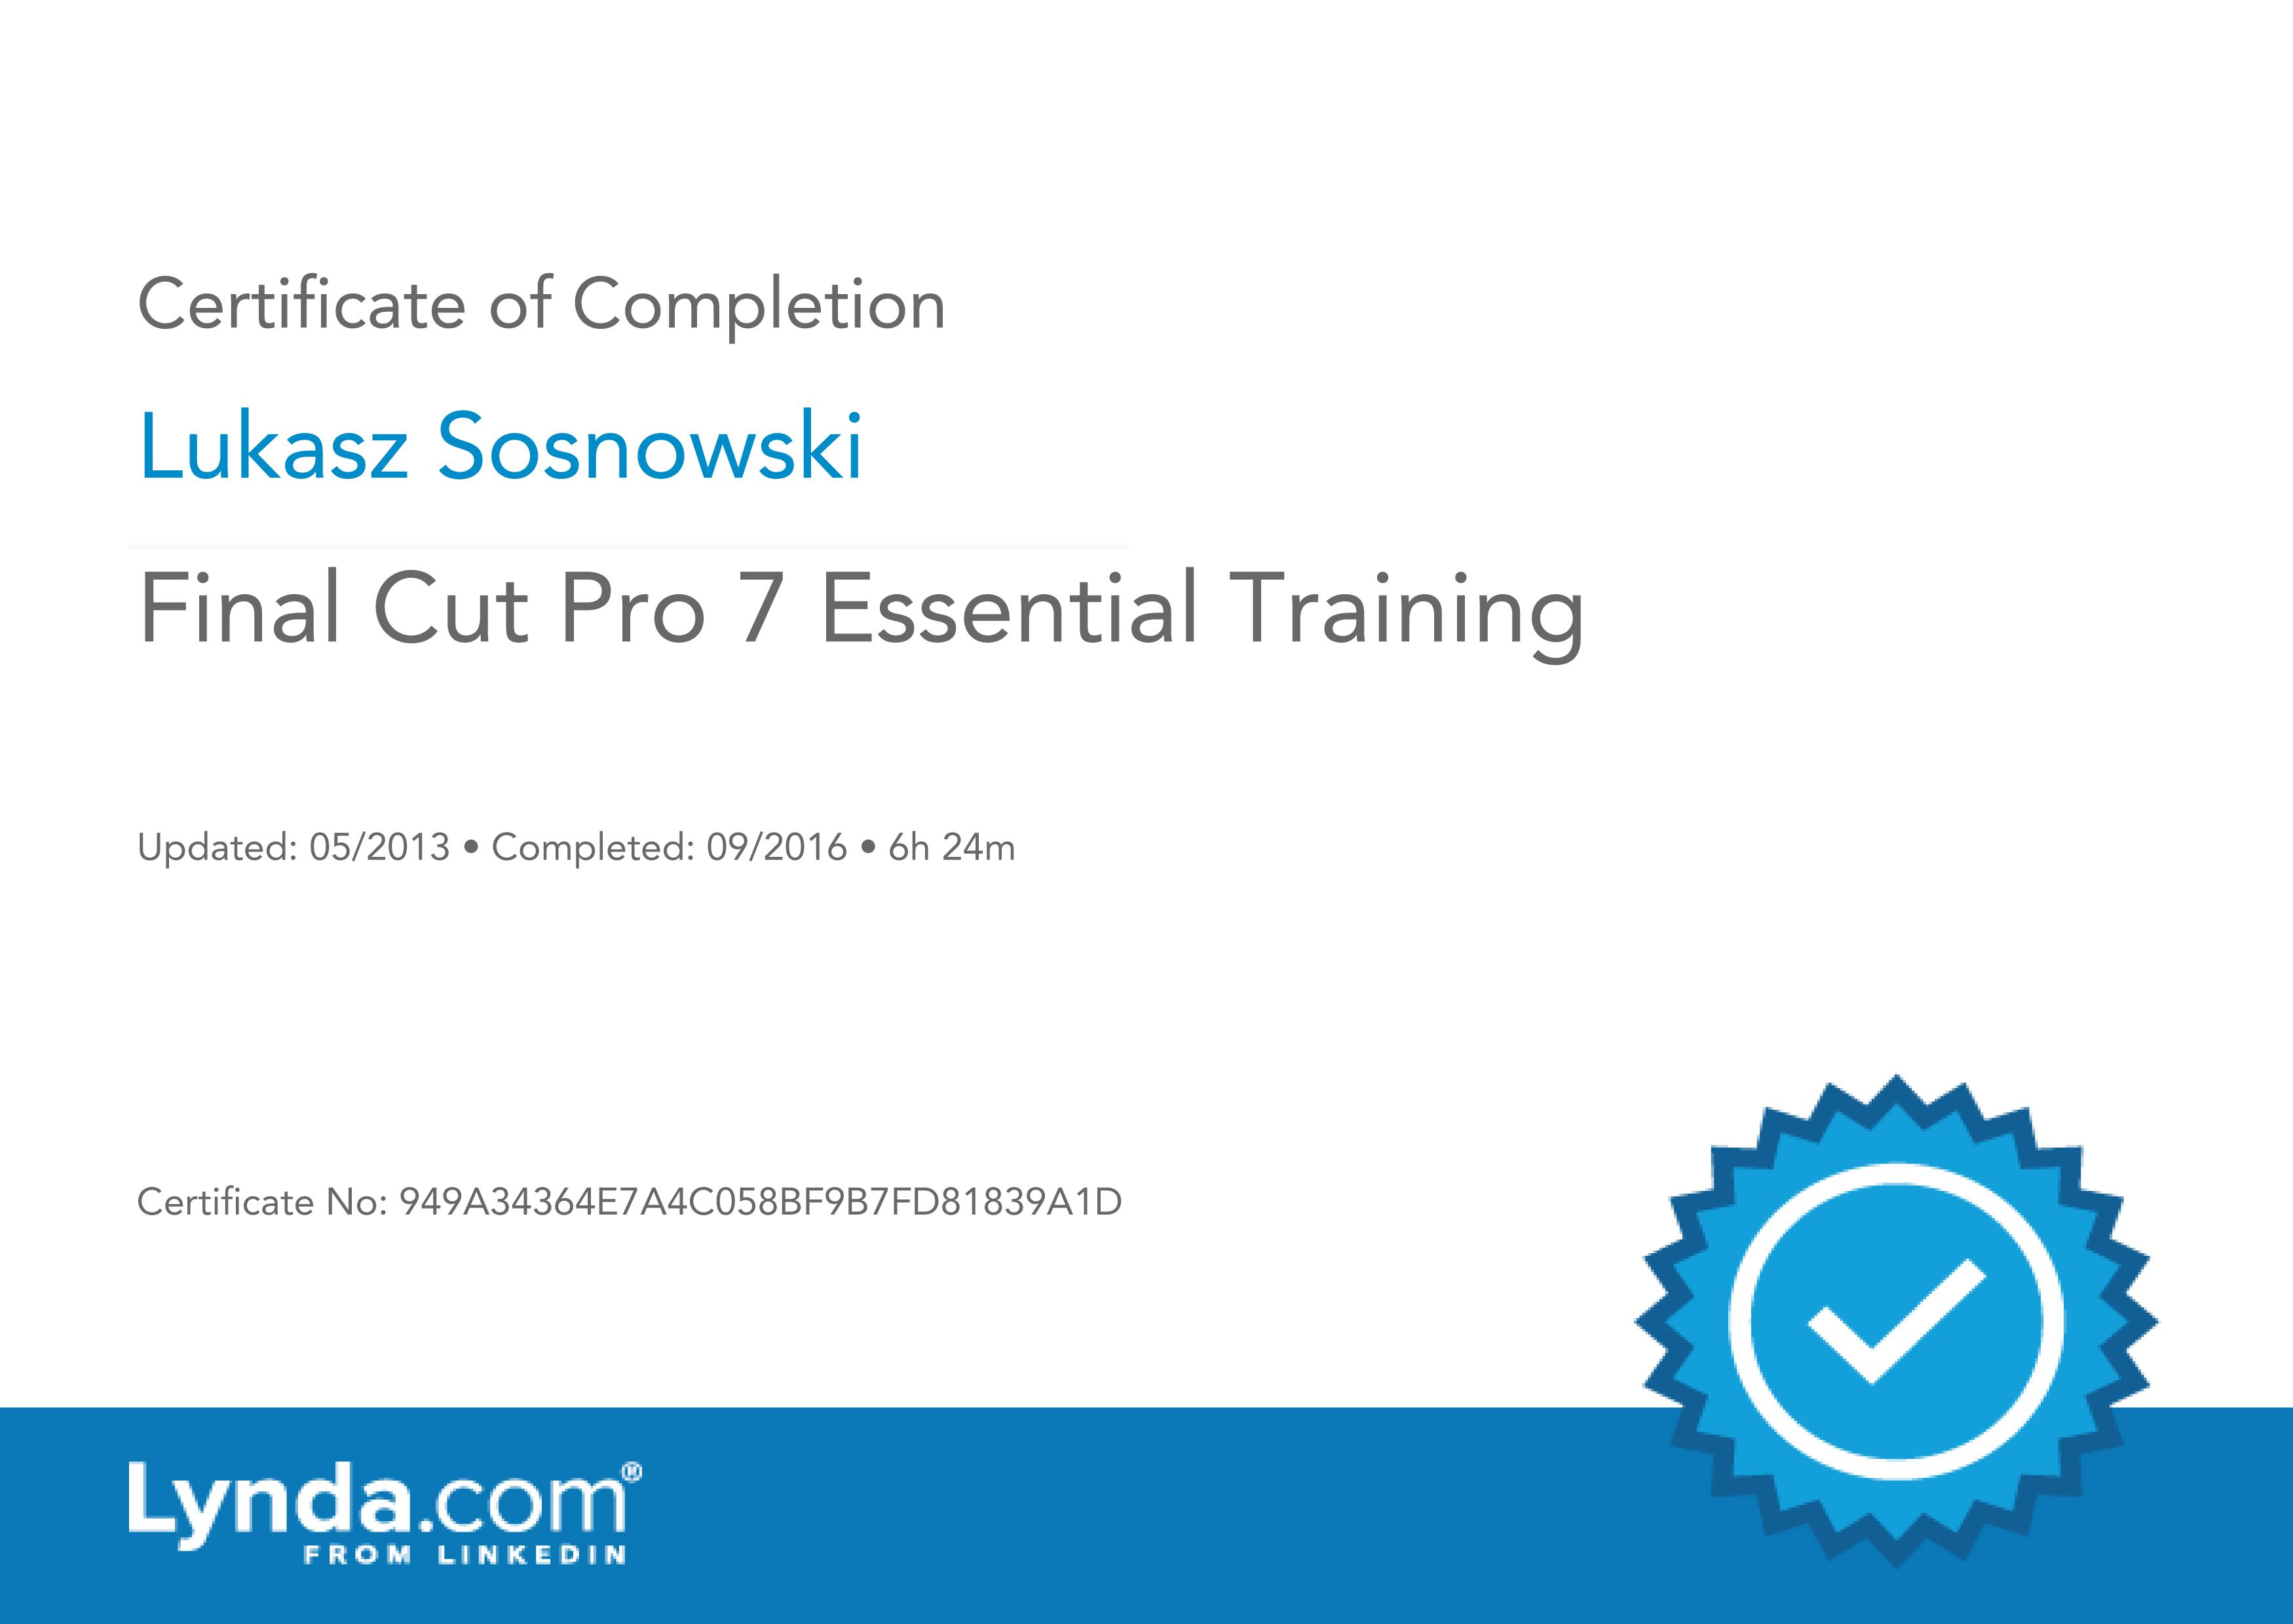 Final Cut Pro 7 Essential Training - Certification of